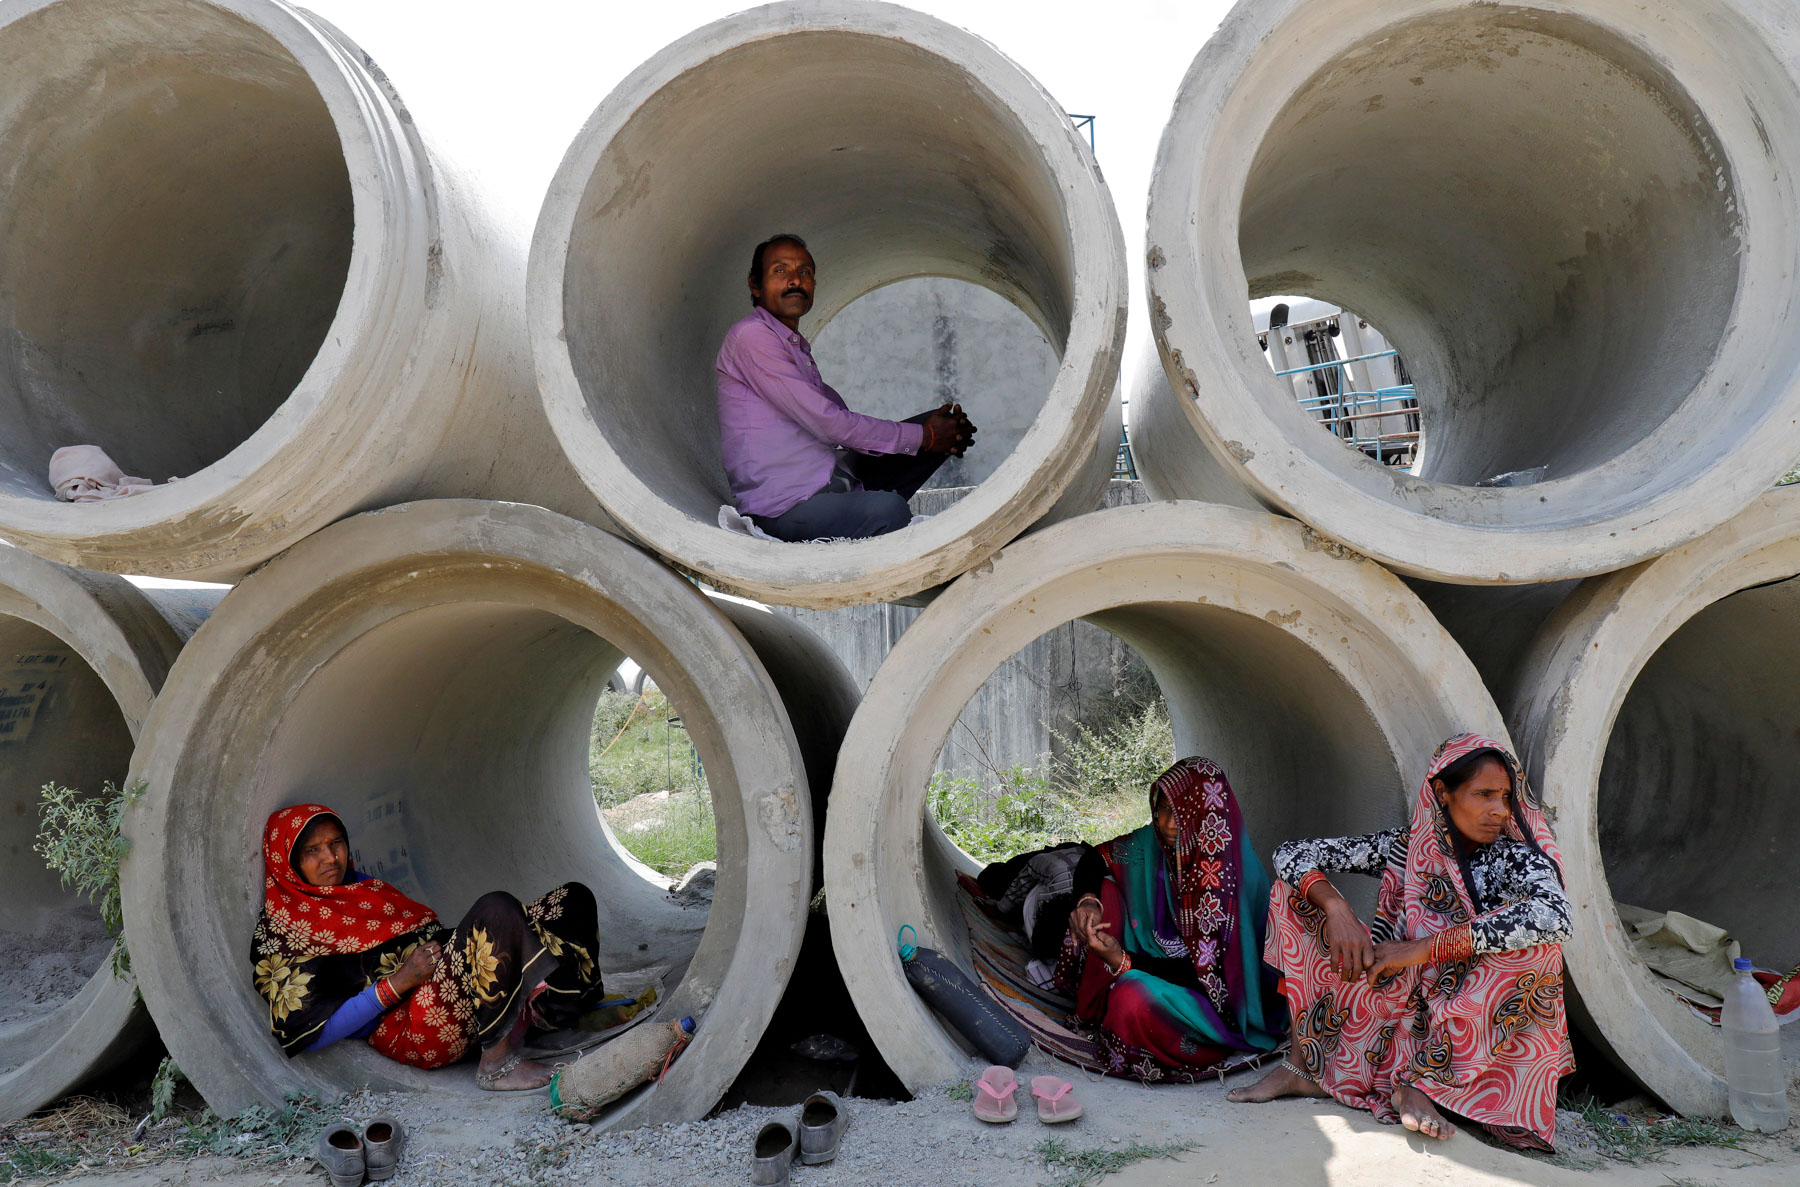 22 April 2020: Migrant labourers rest in cement pipes in Lucknow, India, during the country's nationwide lockdown. Many of them were stuck without food or shelter after it was imposed. (Photograph by Reuters/ Pawan Kumar)